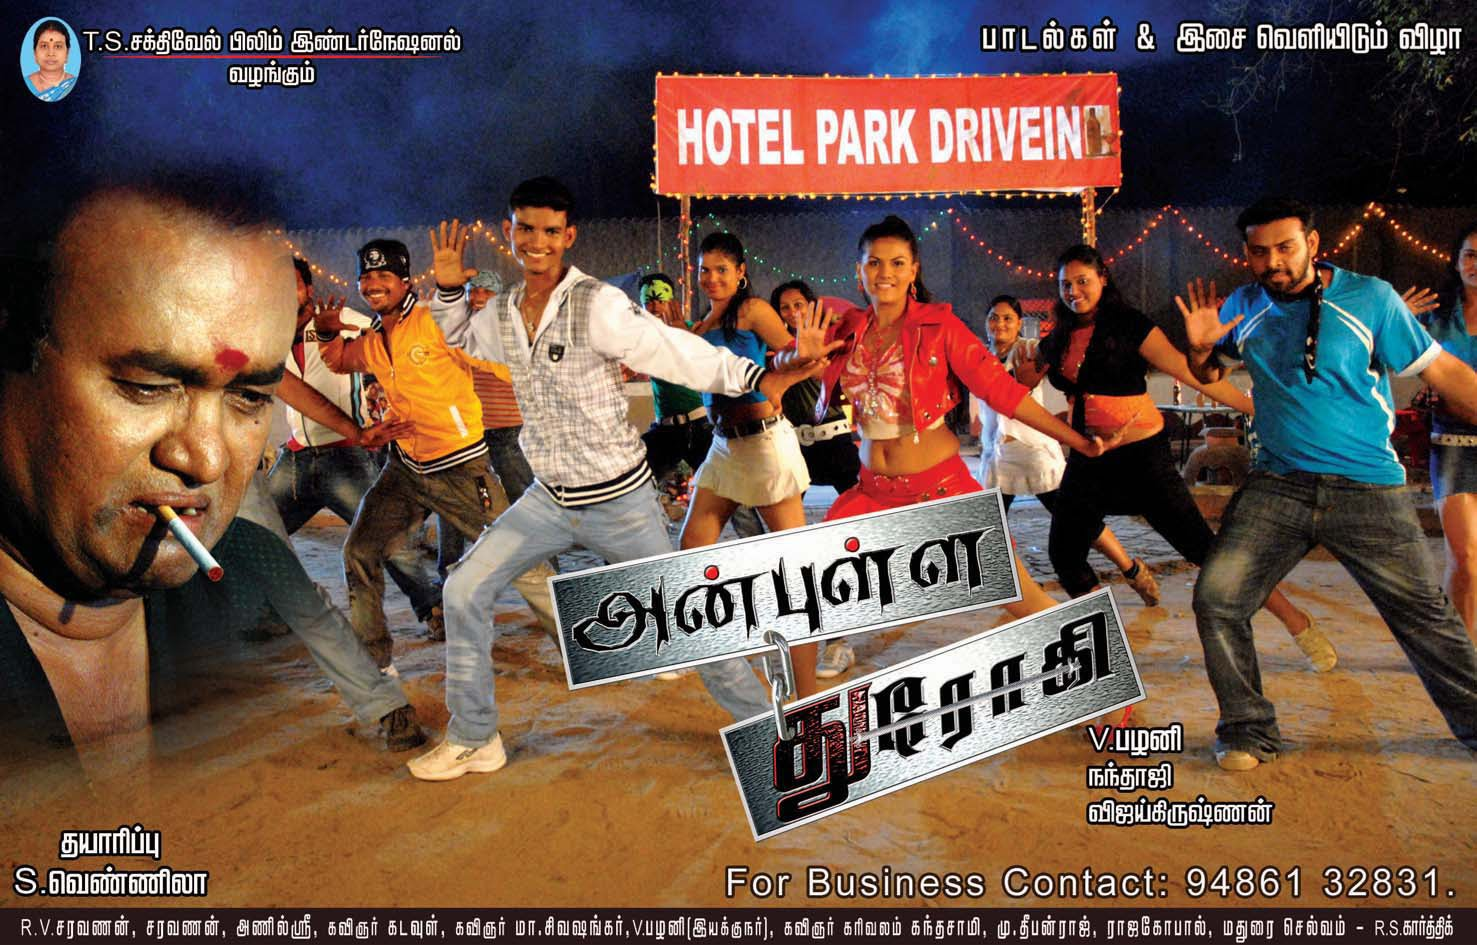 heroes movie songs download 320kbps pagalworld